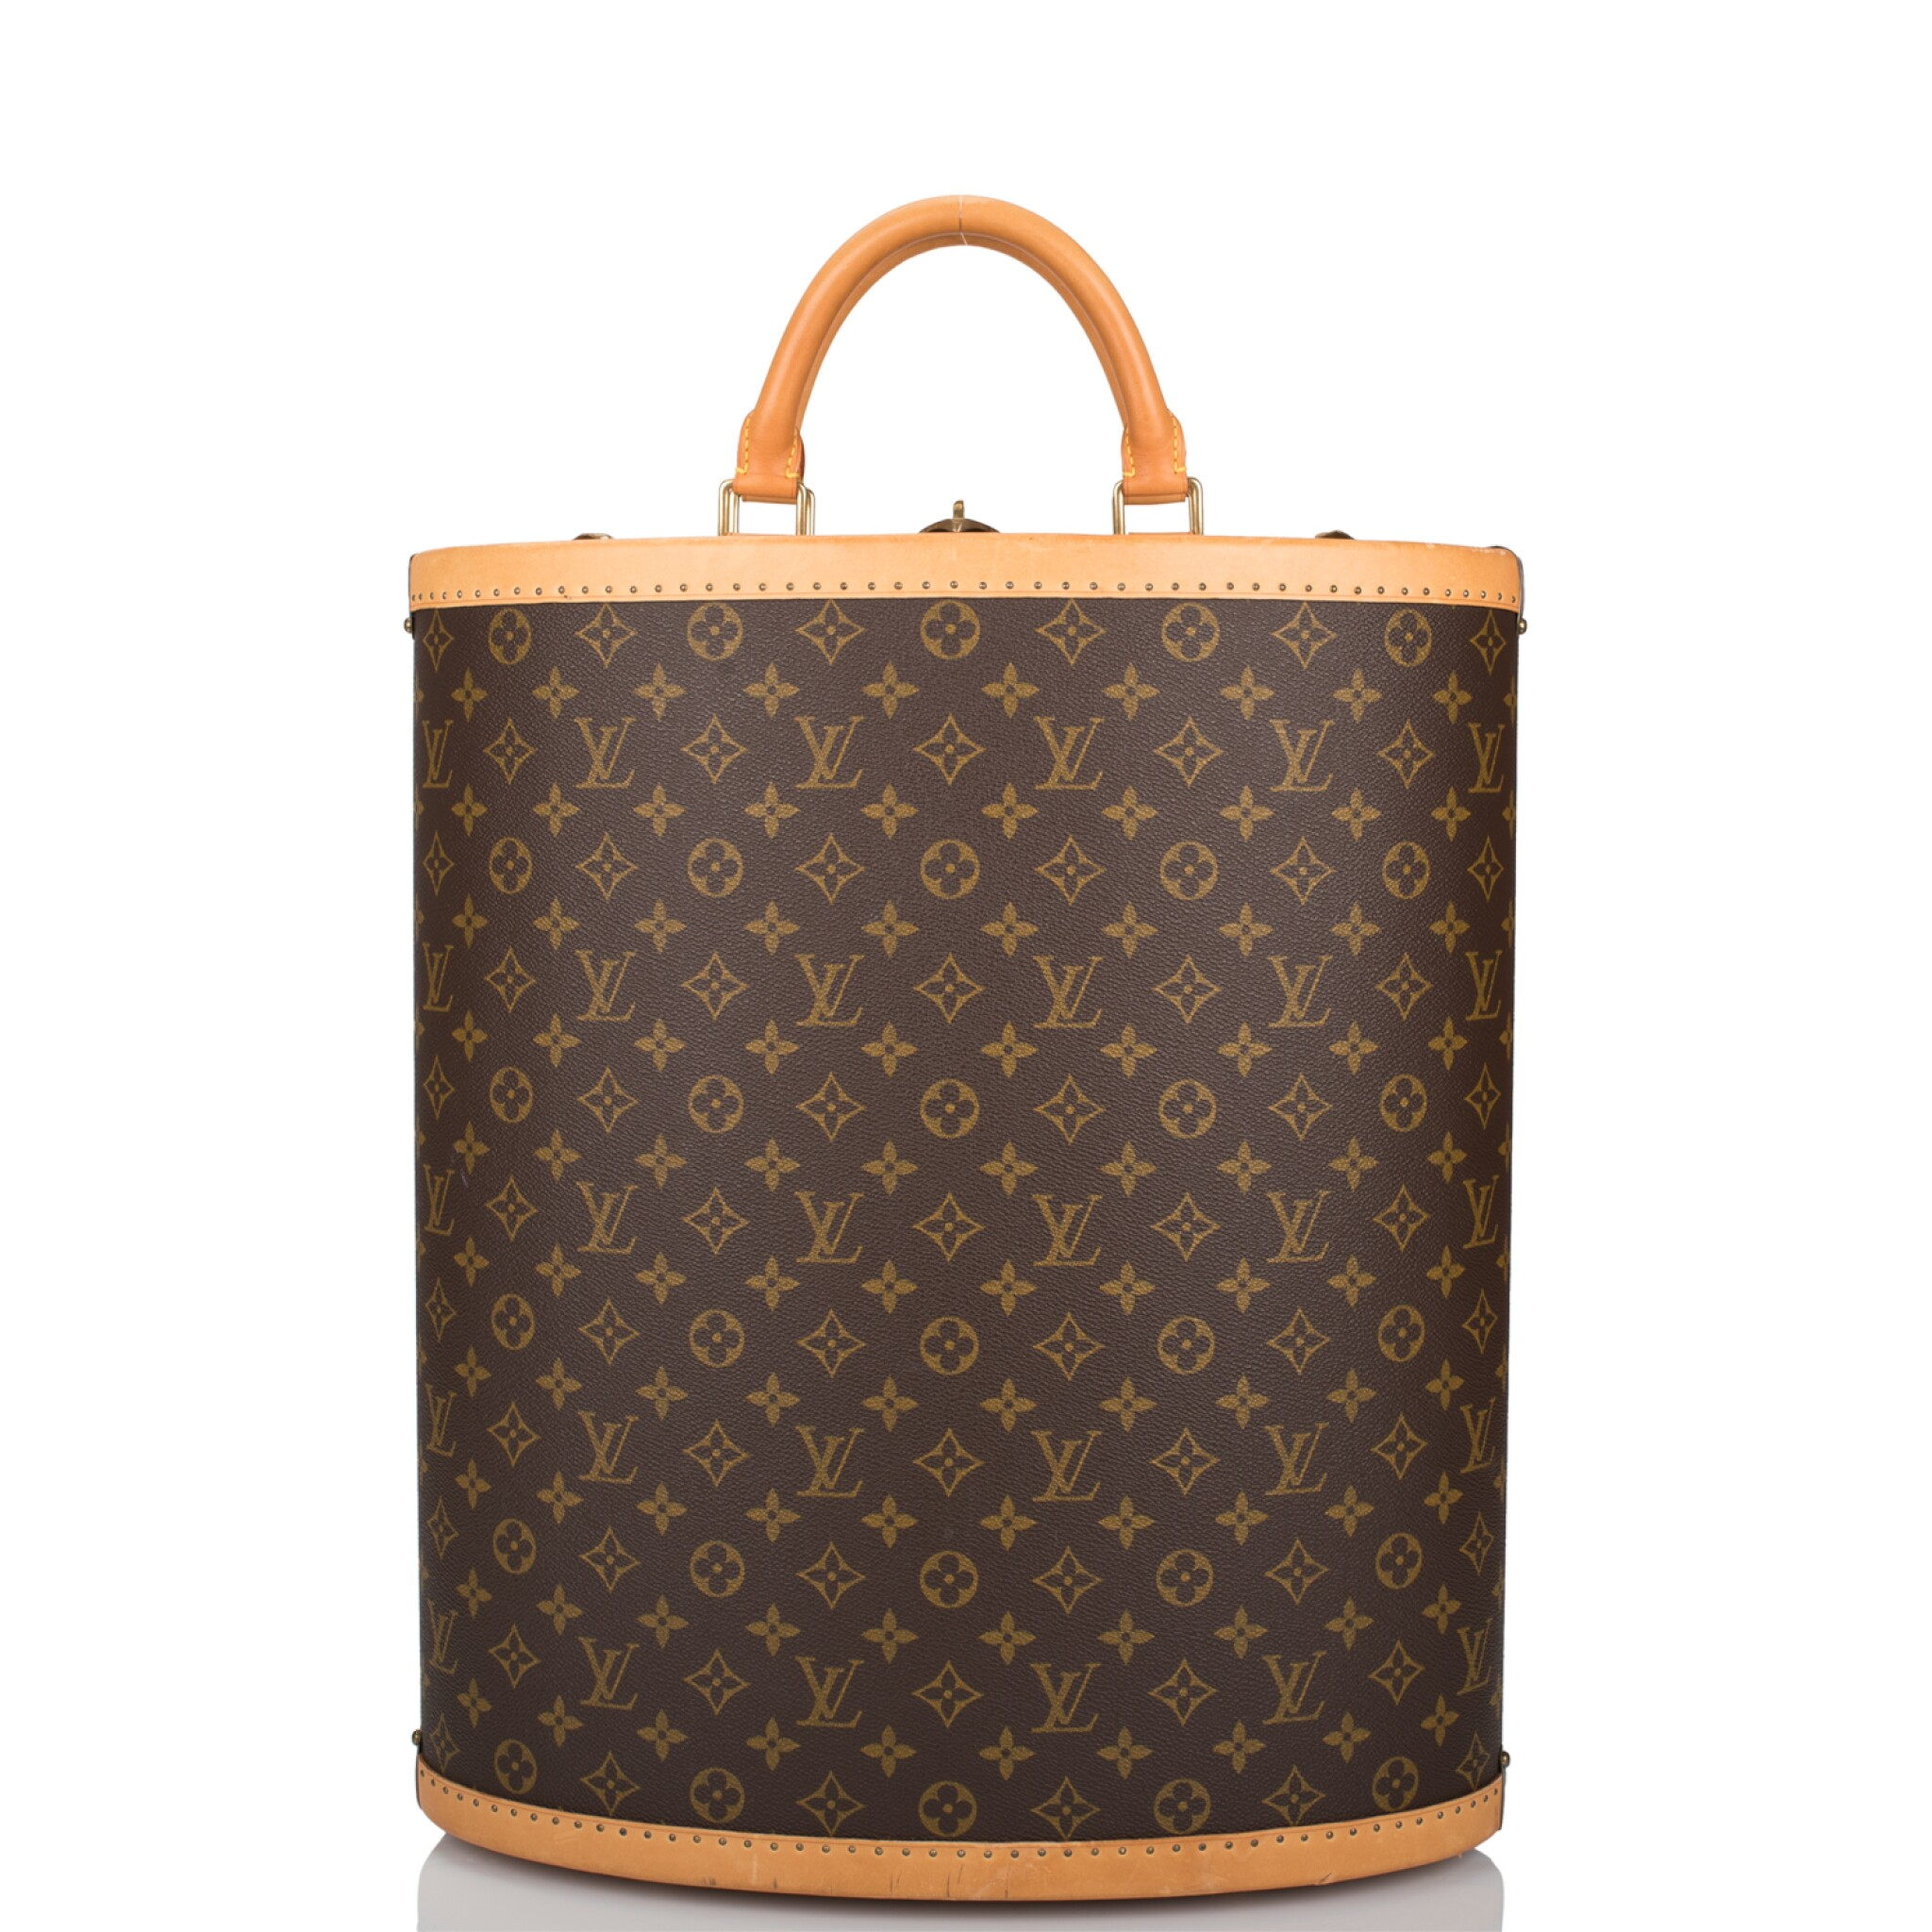 View full screen - View 1 of Lot 99. LOUIS VUITTON X MANOLO BLAHNIK    VINTAGE CENTENAIRE SHOE TRUNK OF MONOGRAM CANVAS WITH POLISHED BRASS HARDWARE.